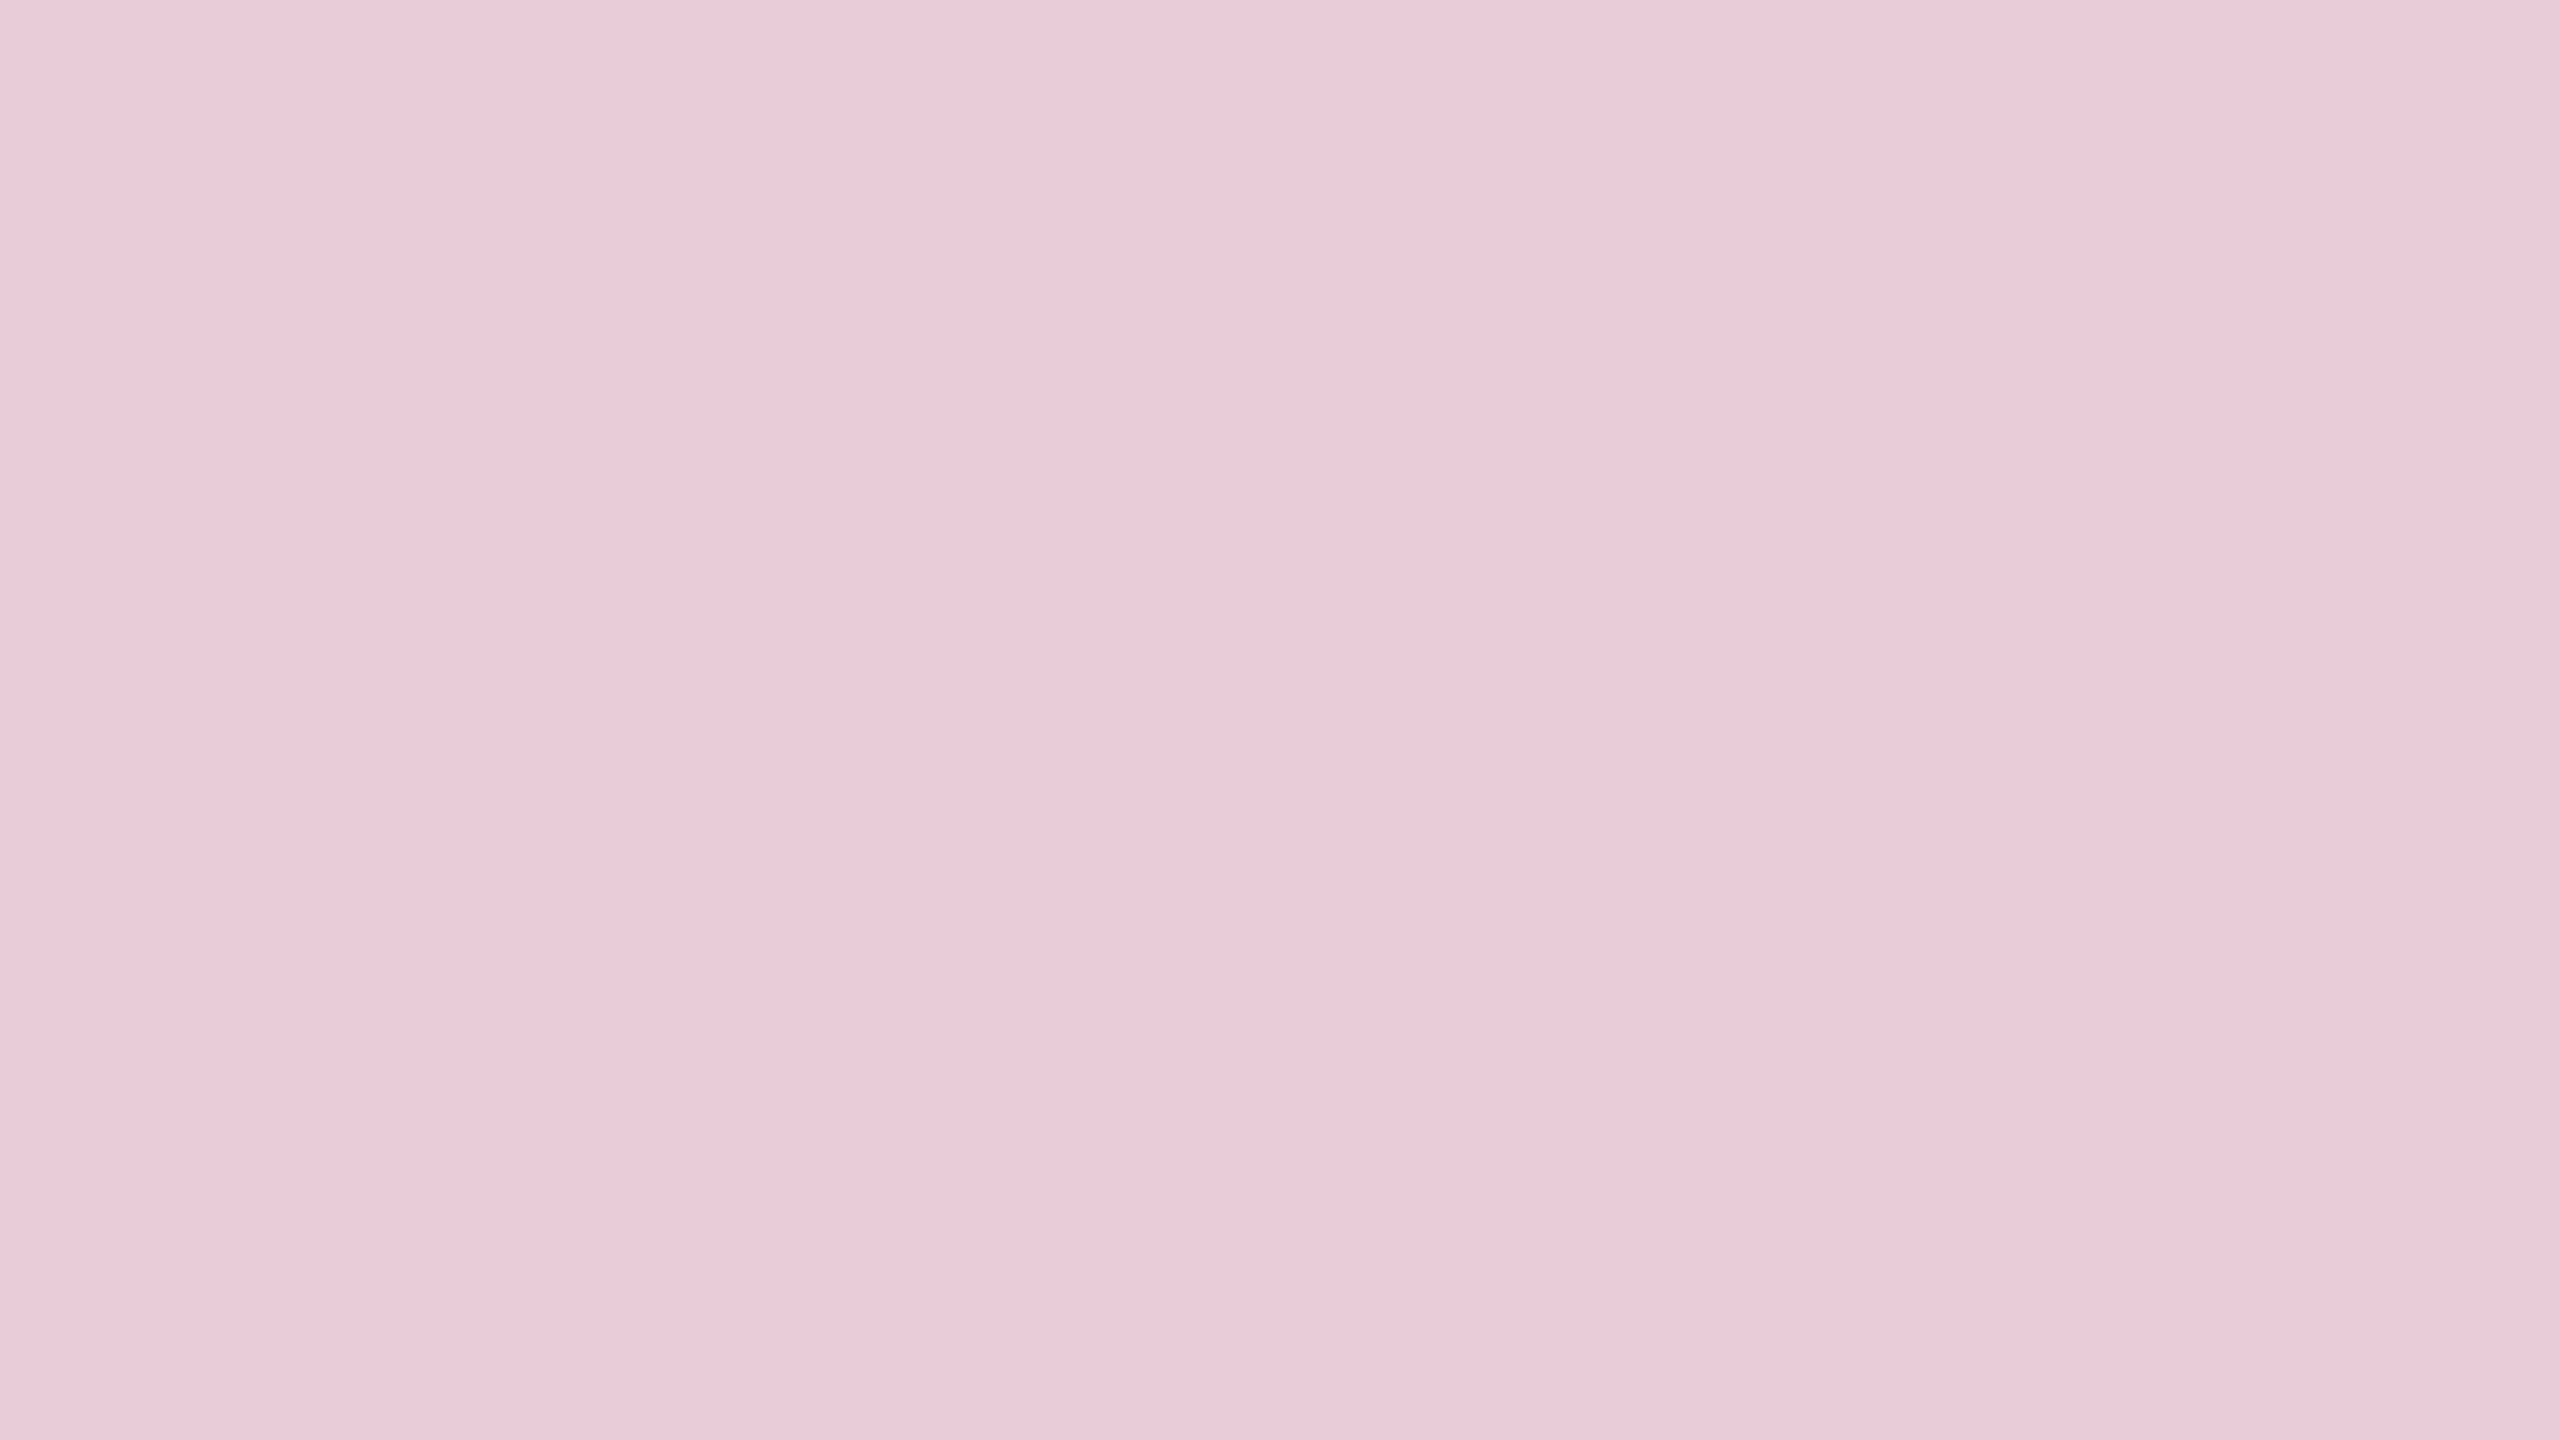 2560x1440 Queen Pink Solid Color Background